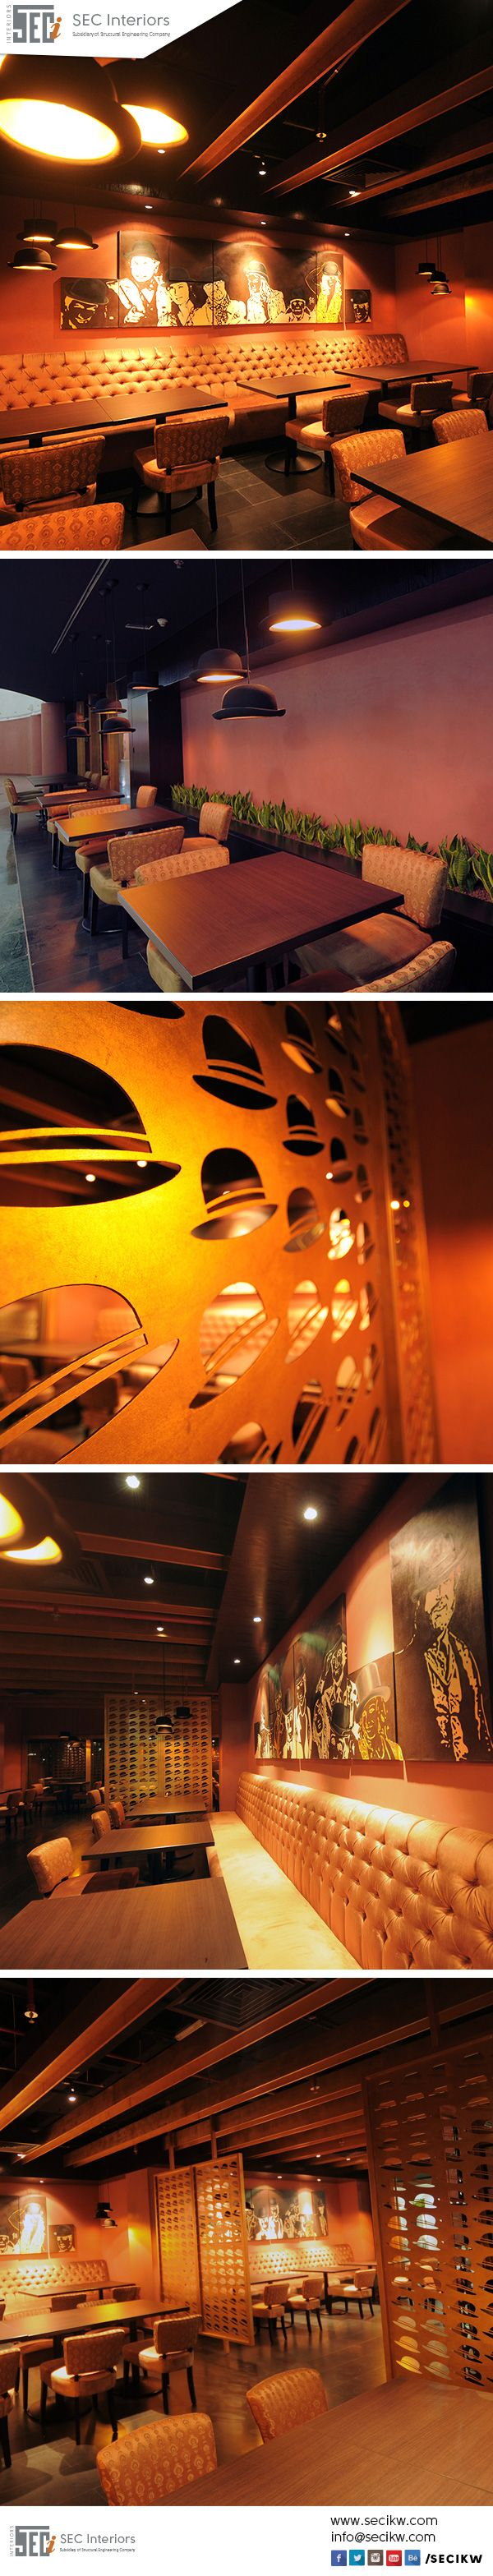 best projects images on pinterest - representing all things modern oliversan's restaurant decor says it allfrom the lush